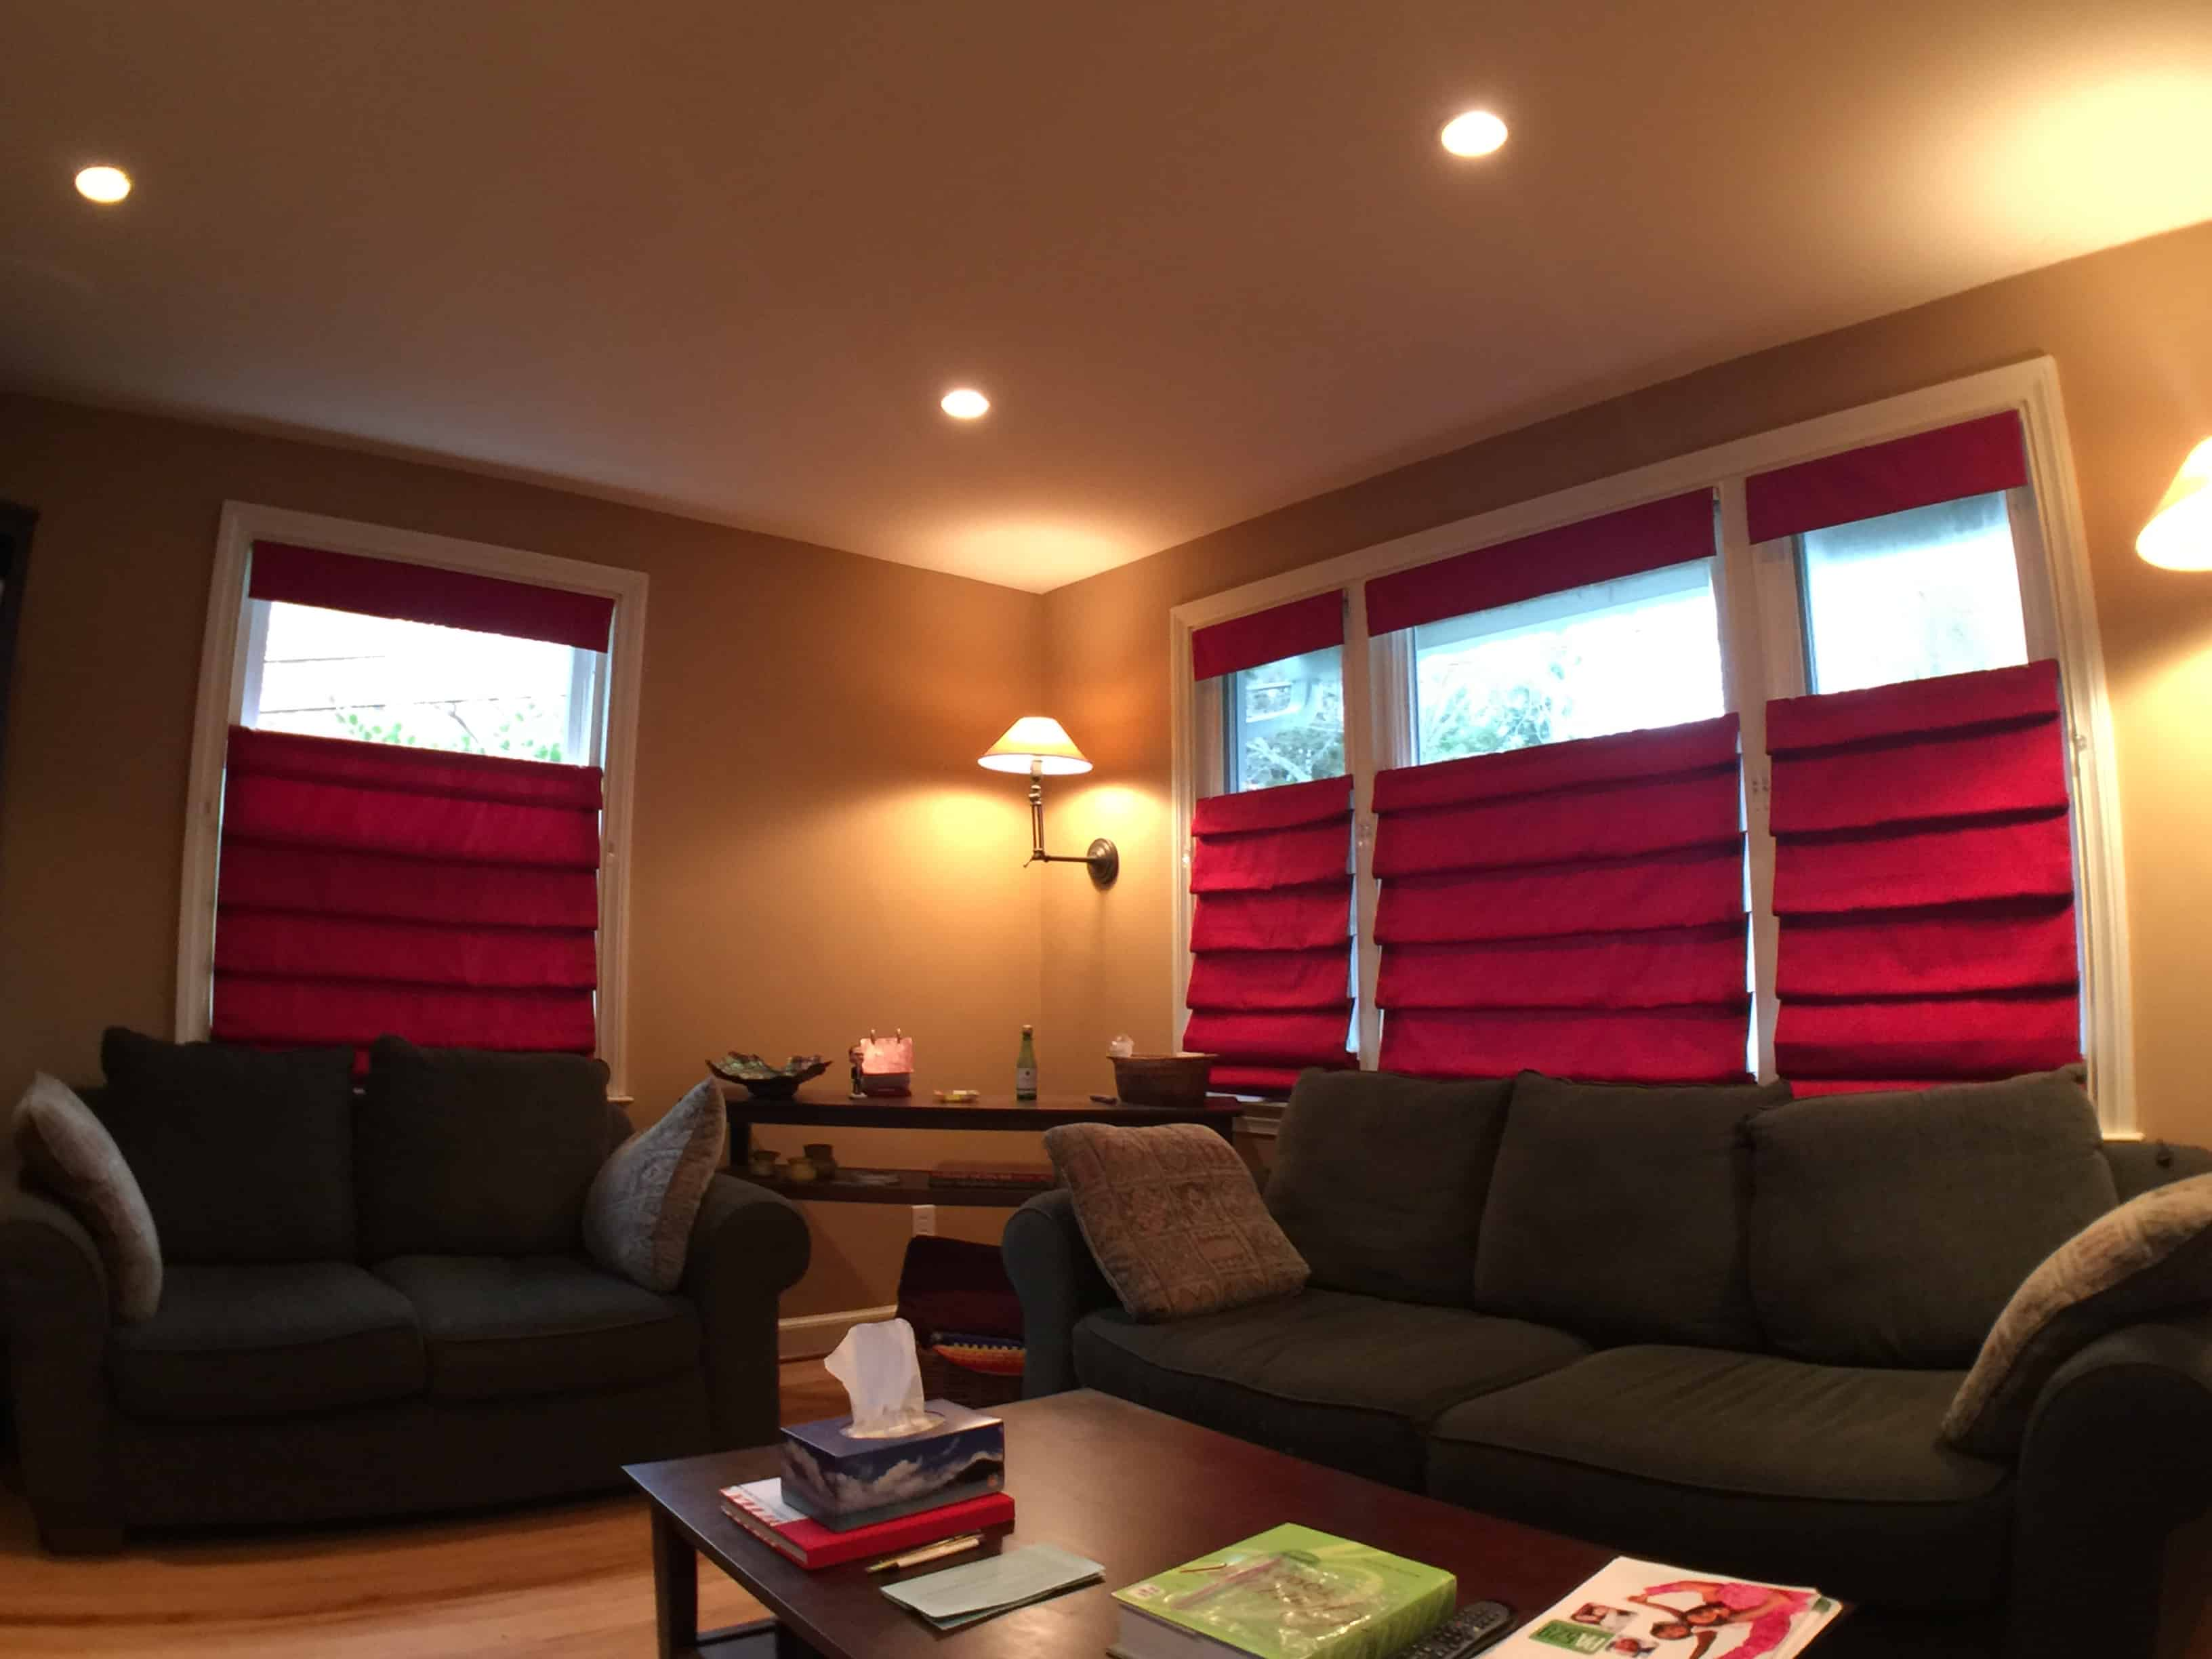 Where To Buy Roman Shades Where To Buy Roman Shades In Philadelphia Blinds Brothers